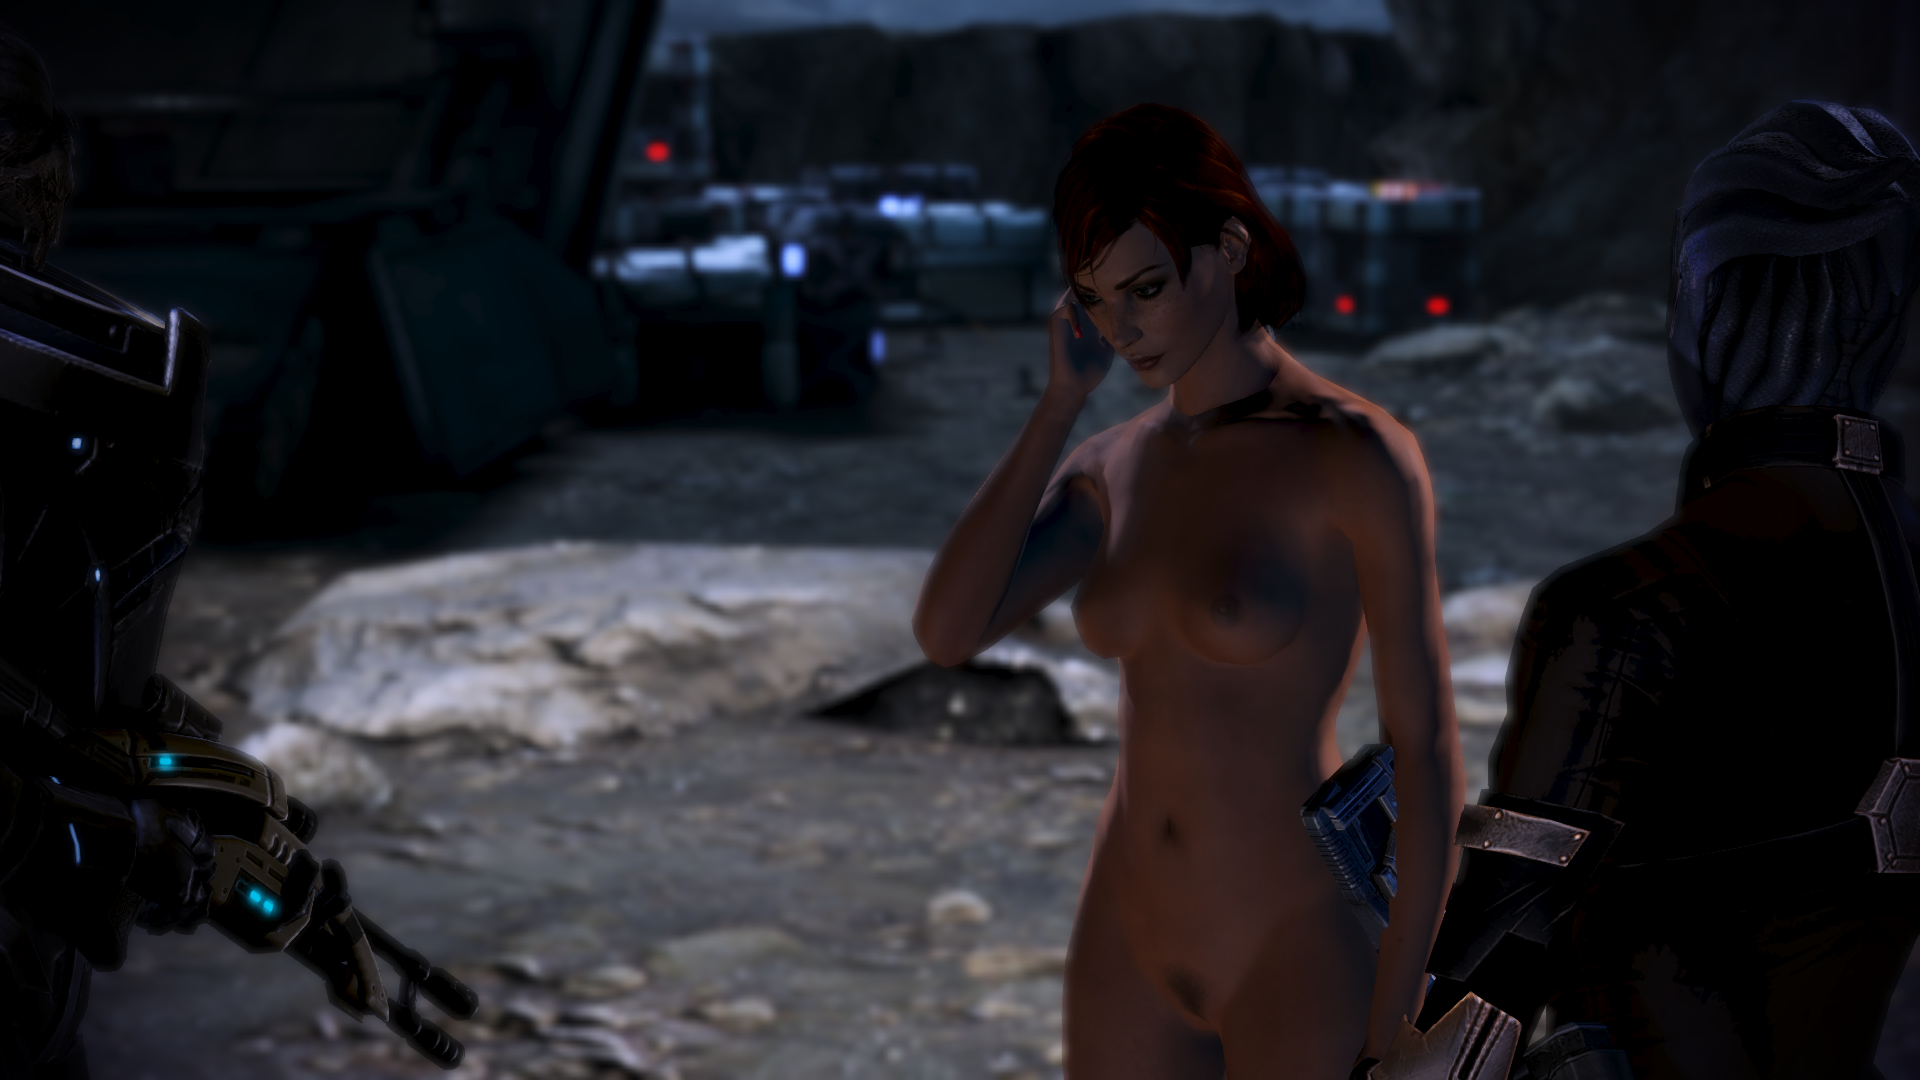 Mass effect nude skins sexy photo